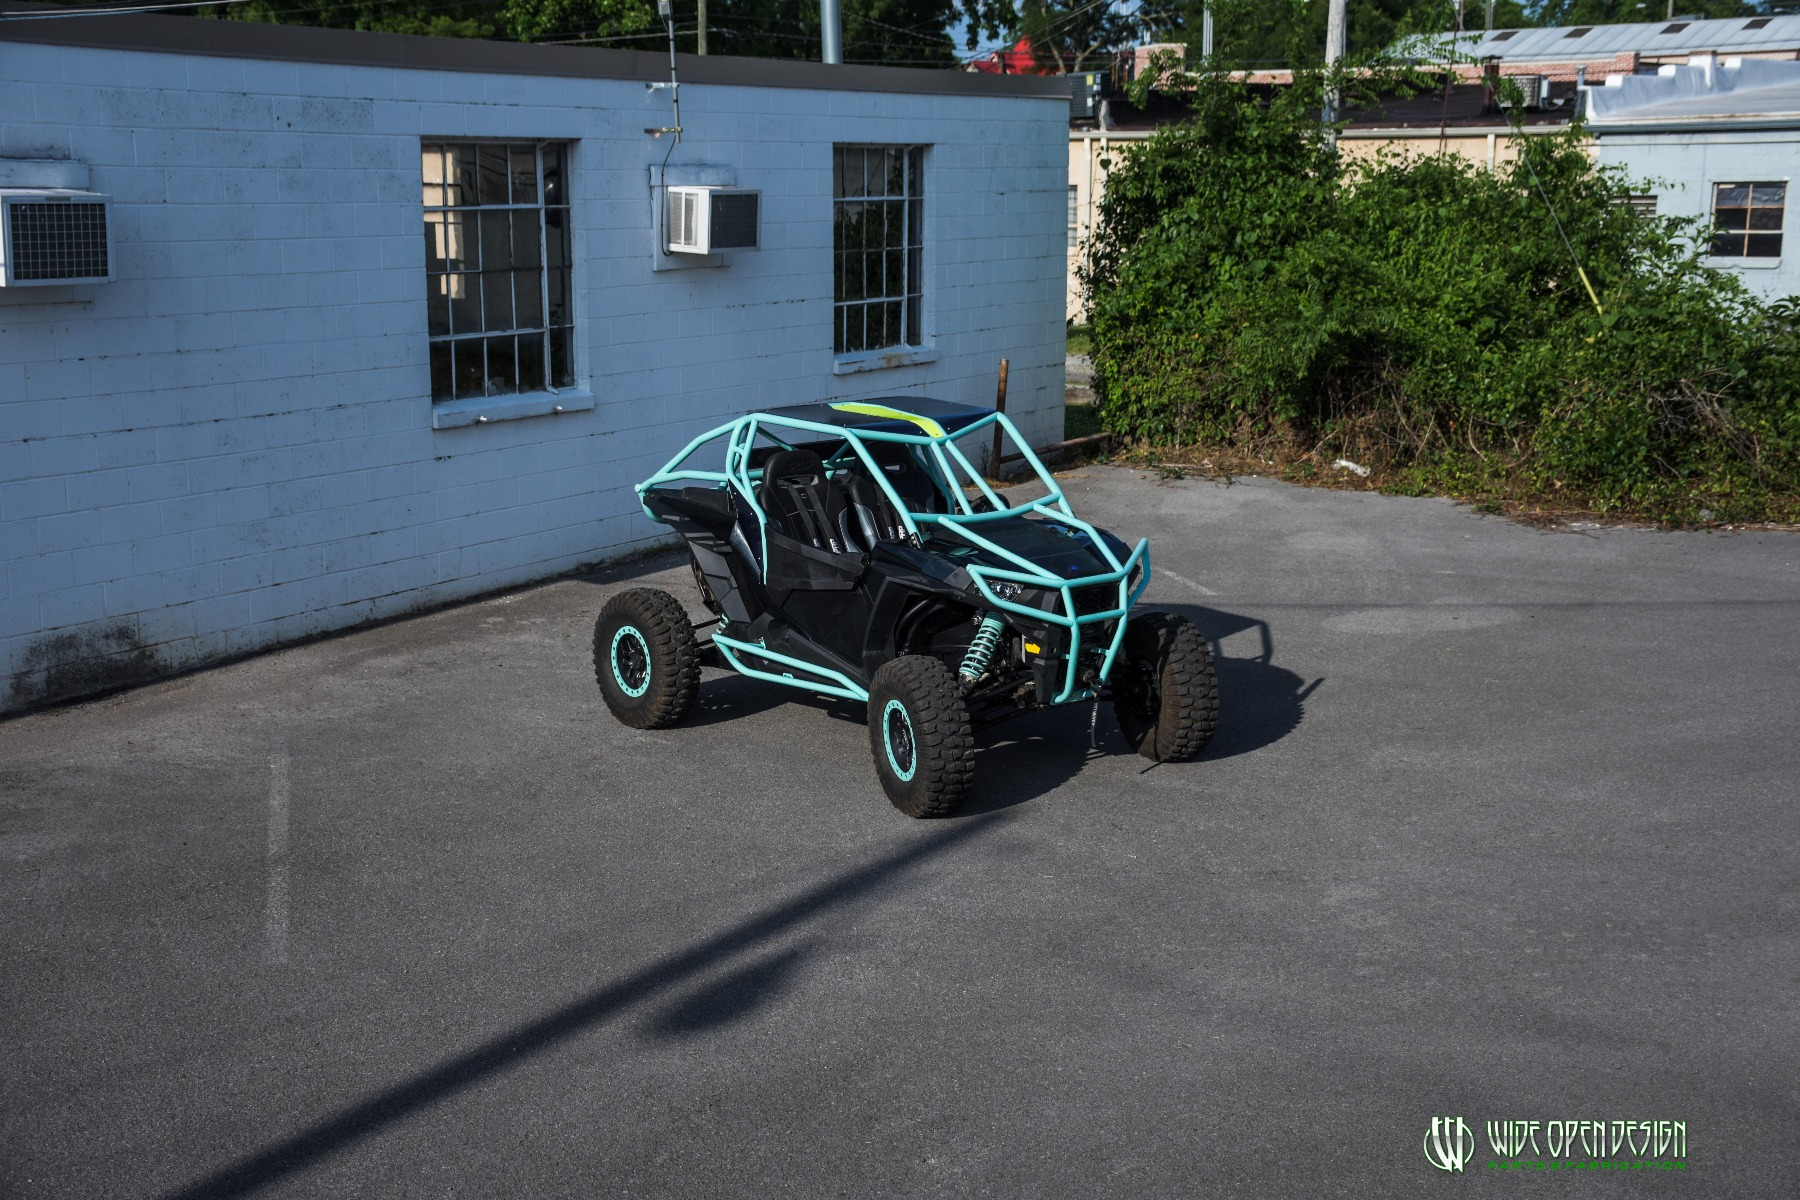 Wide Open Design UTV Cage RZR Cage Double Down featuring Double Pillars 22